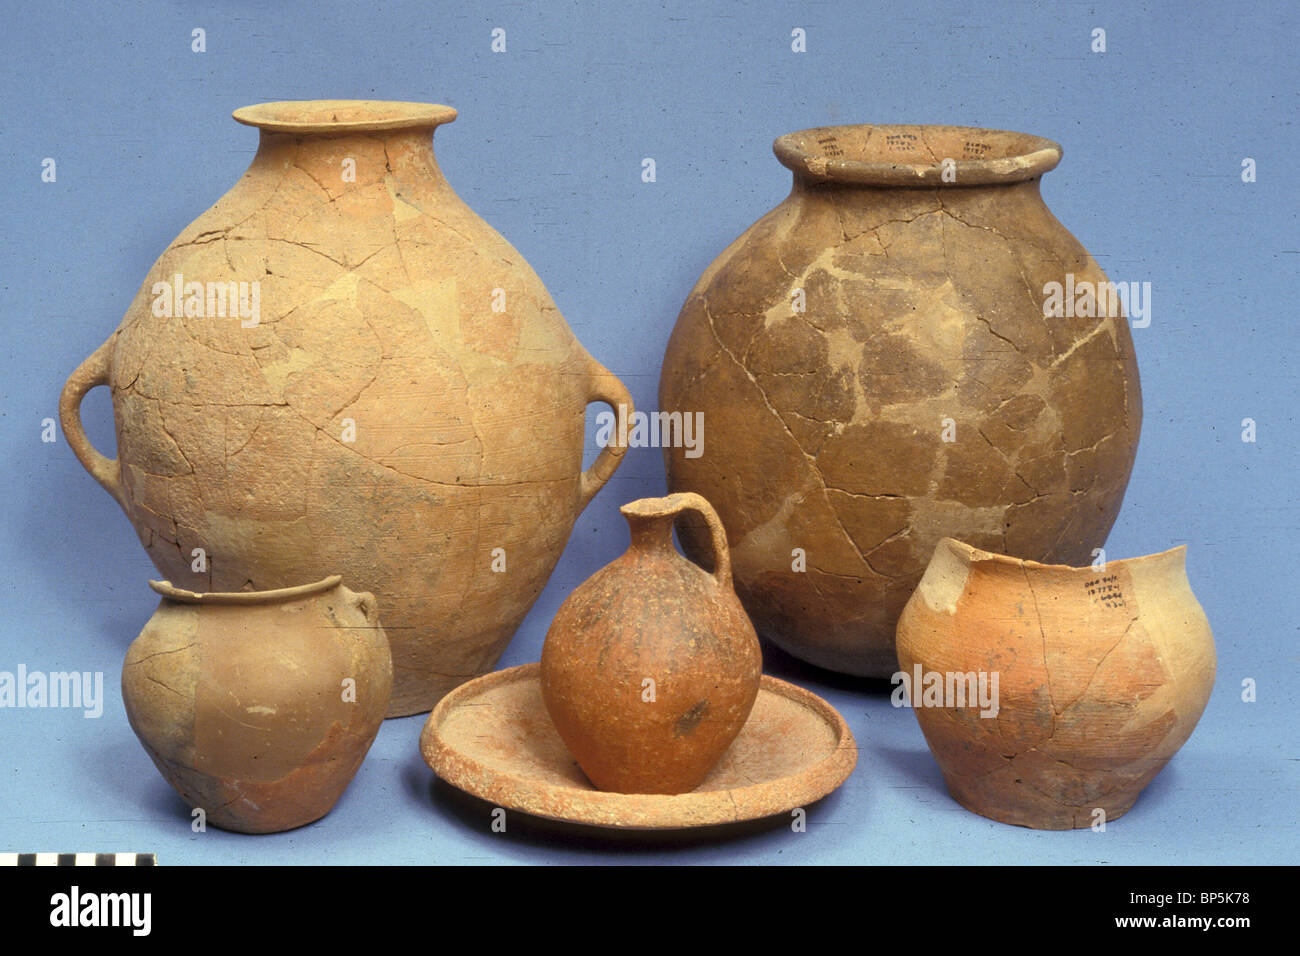 4715. EARLY BRONZE, C. 18TH. C. BC POTTERY EXCAVATED IN TEL DAN, LAISH - Stock Image